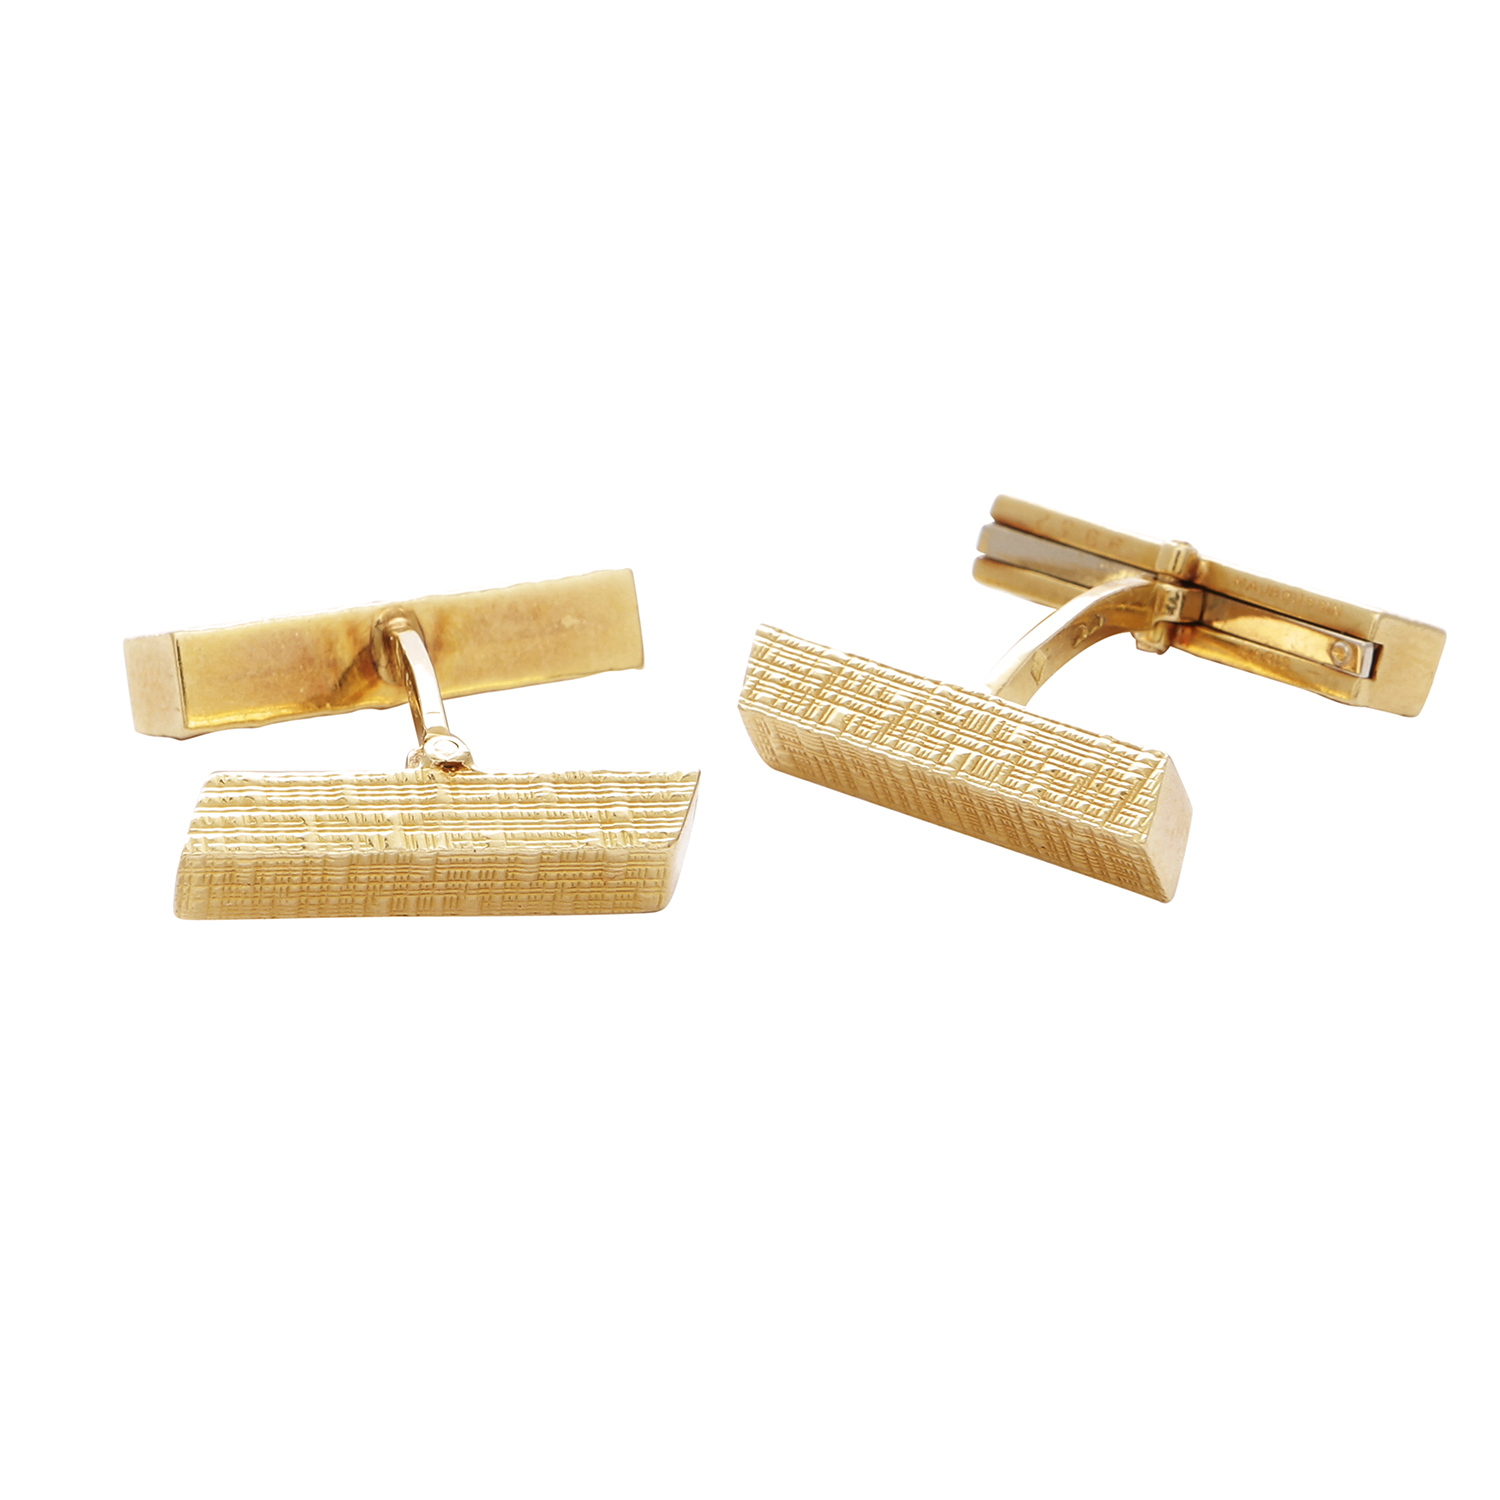 Los 4 - A PAIR OF VINTAGE CUFFLINKS in 18ct yellow gold, each formed of two textured batons, French assay